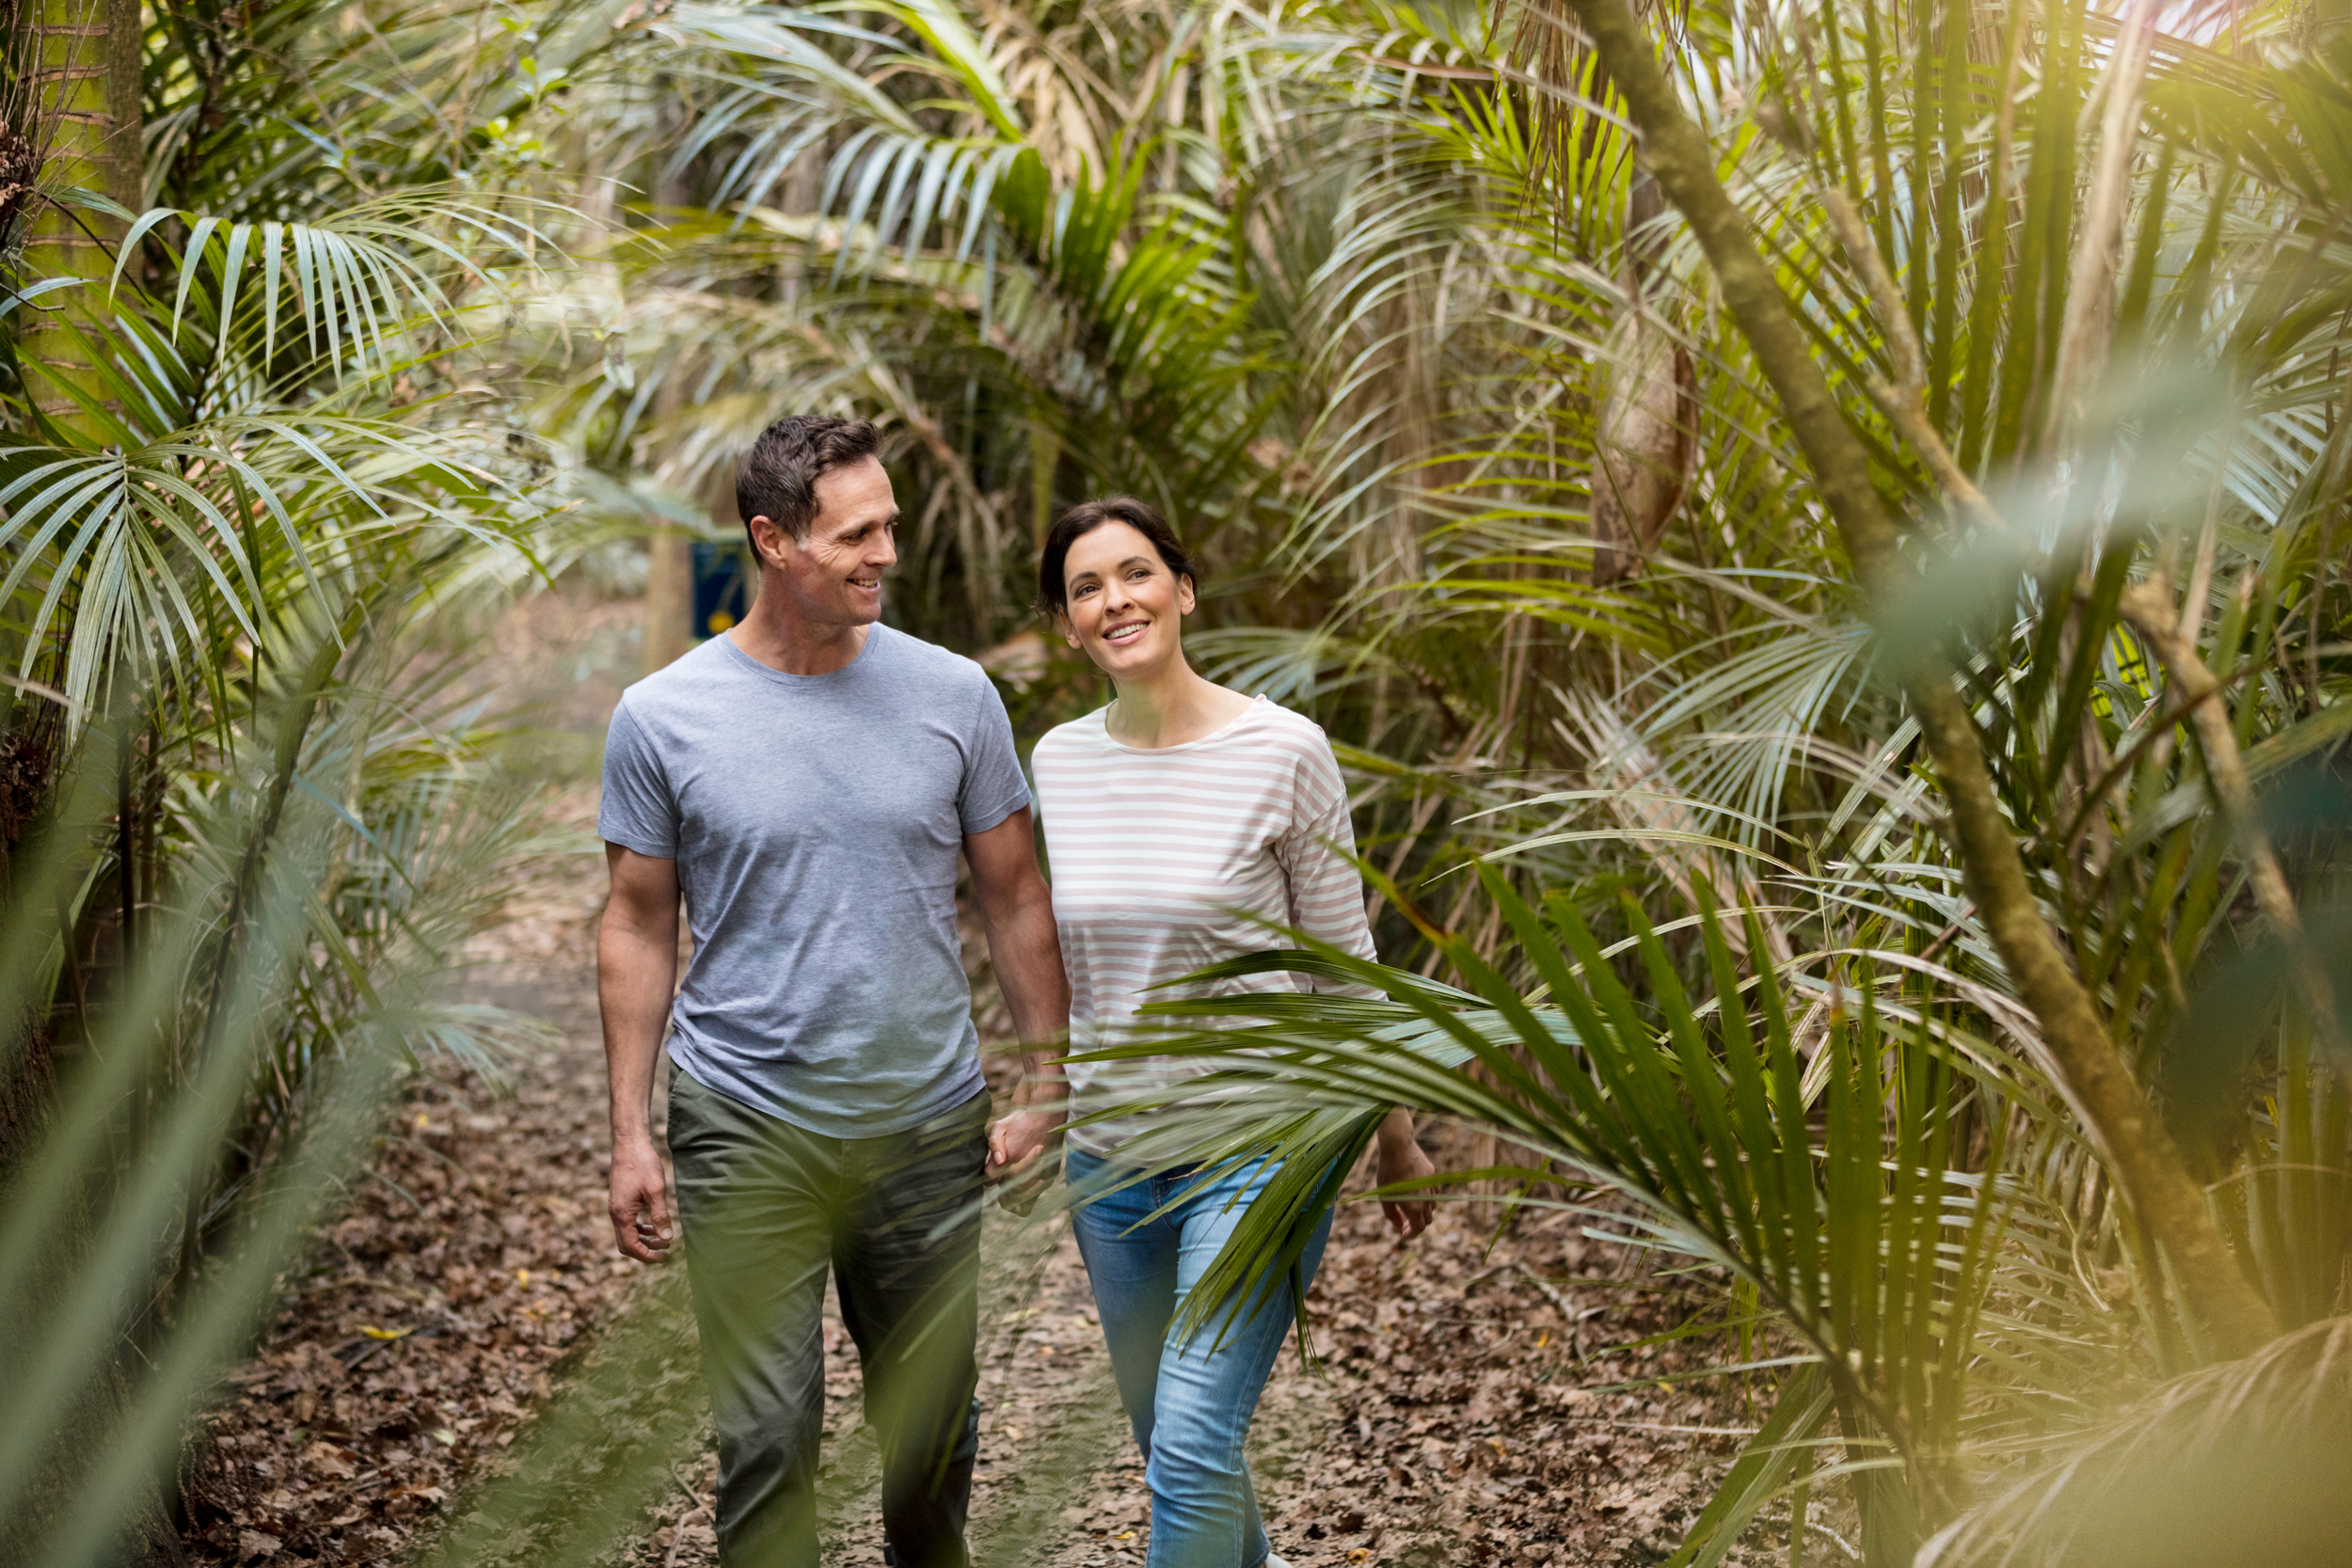 PH_Lifestyle_Couple-Bushwalk-2440.jpg